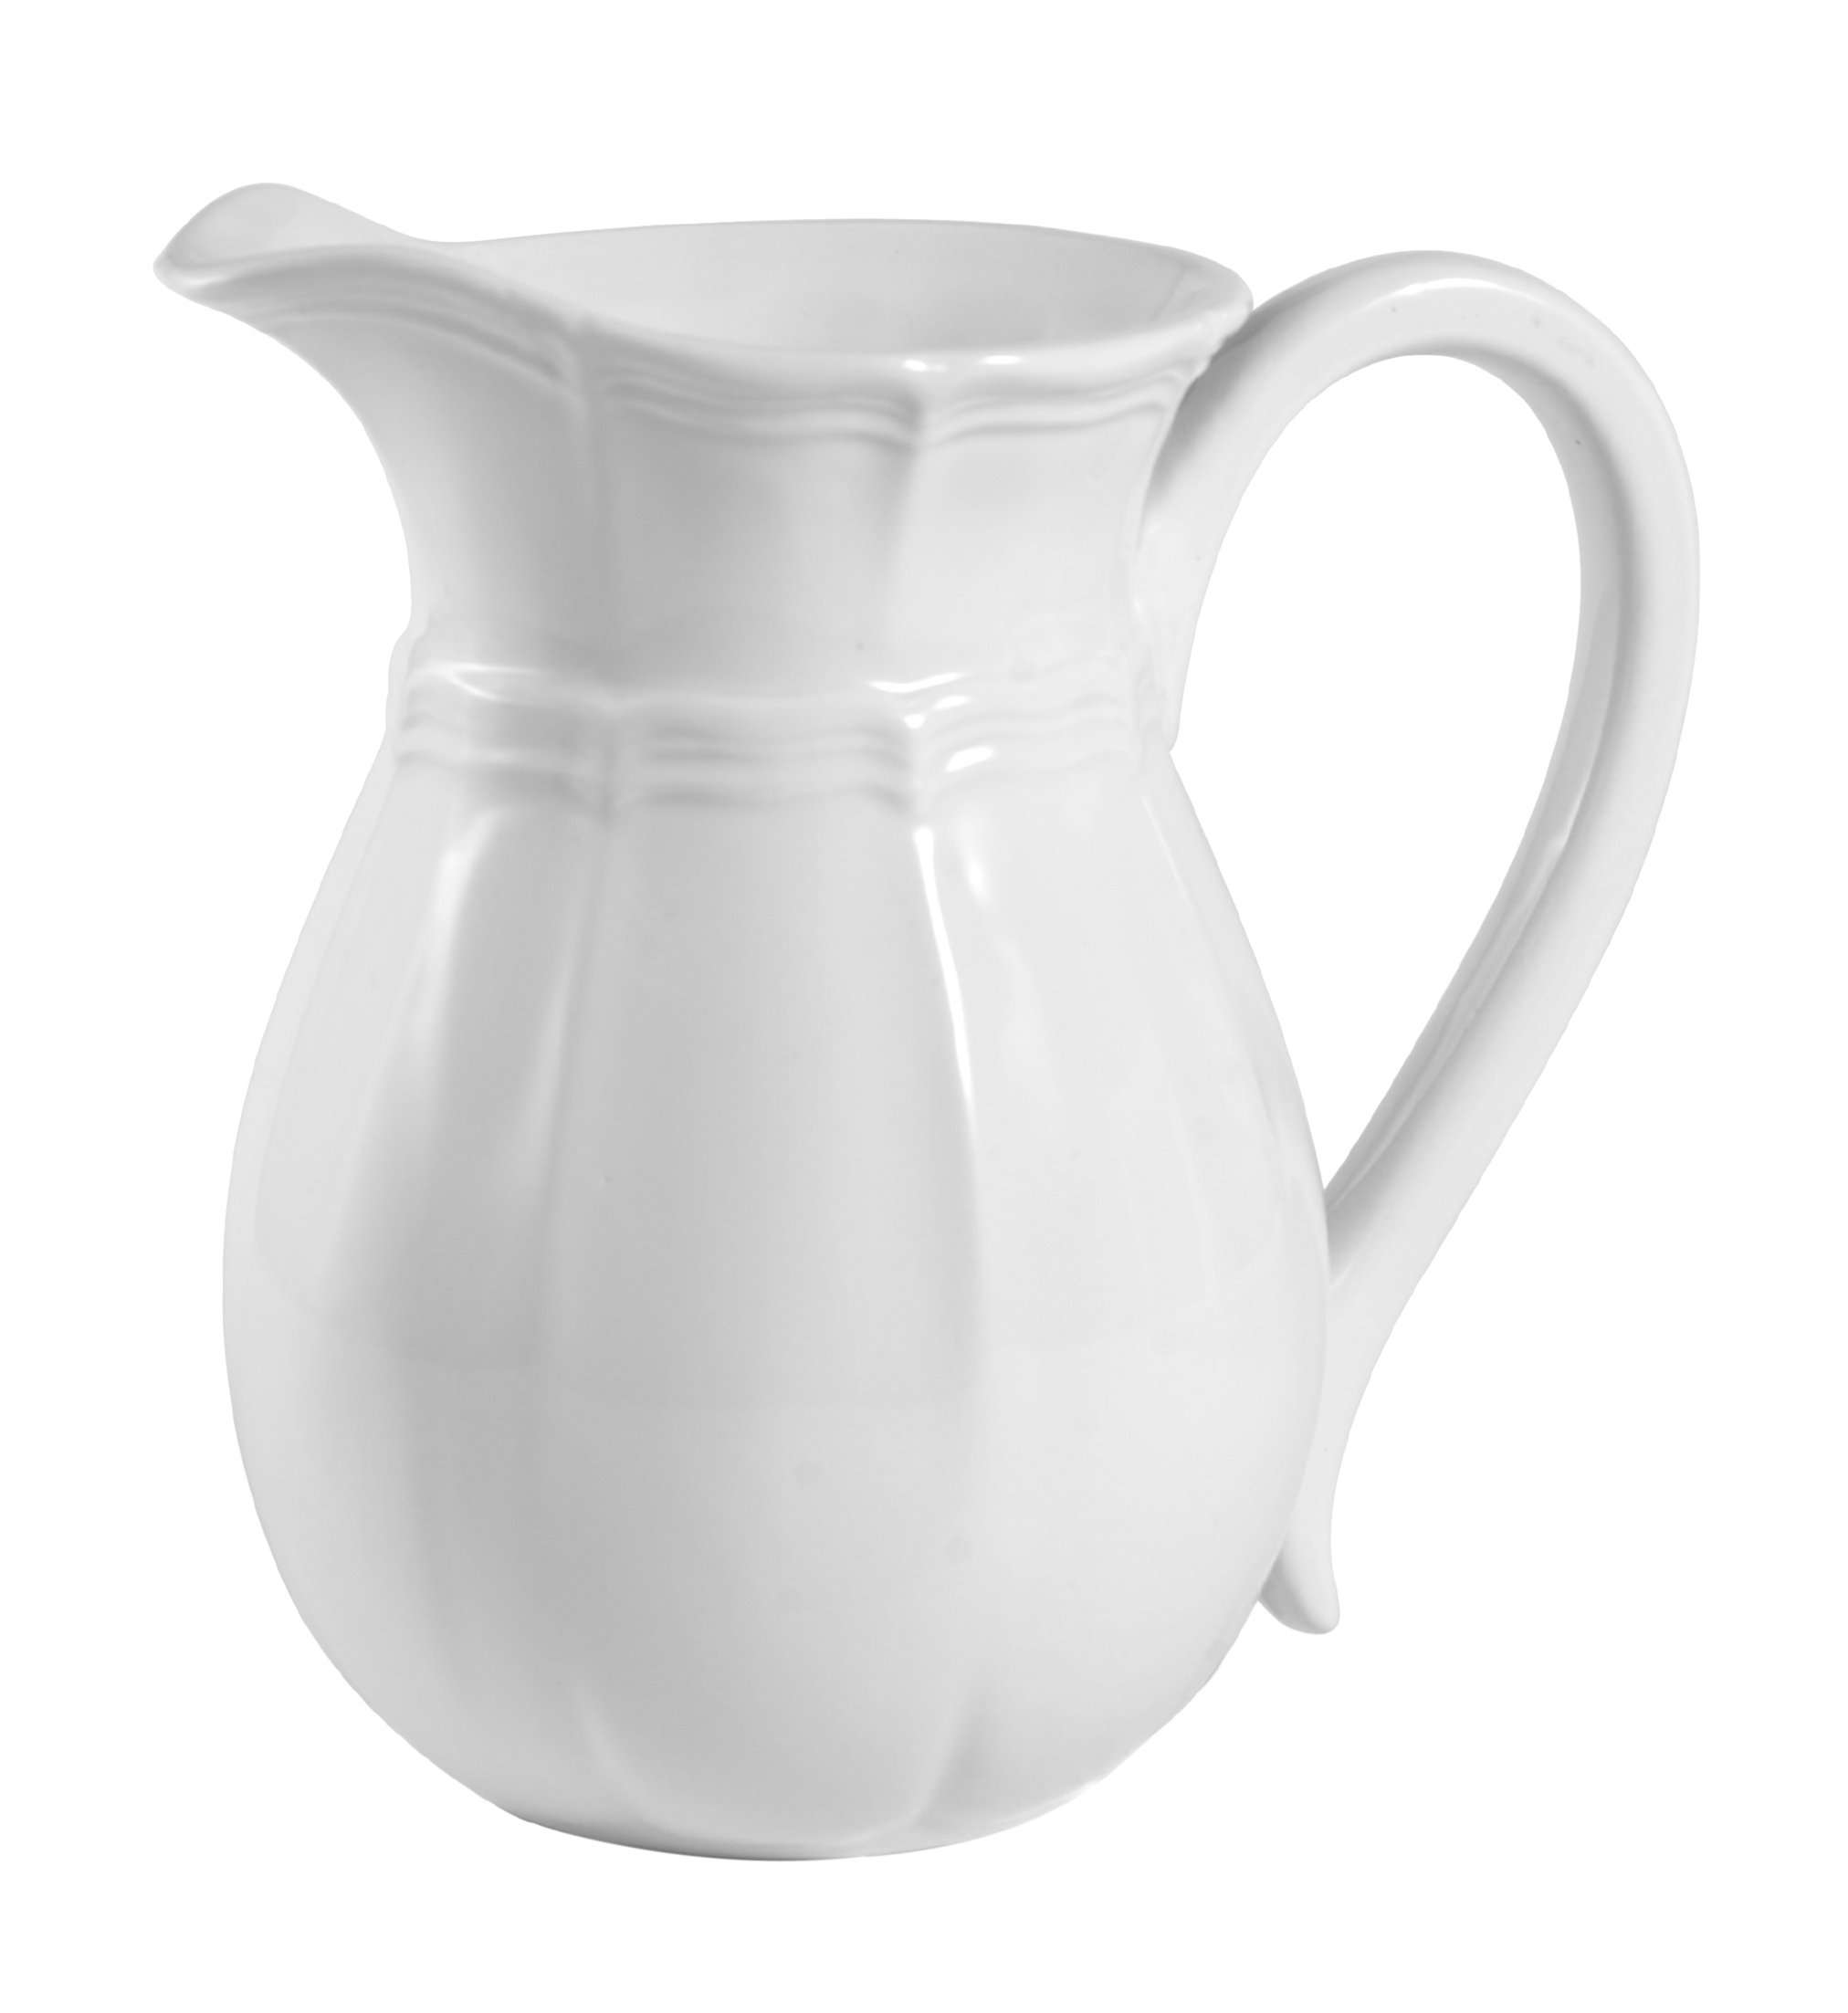 Mikasa French Countryside Pitcher, 47-Ounce